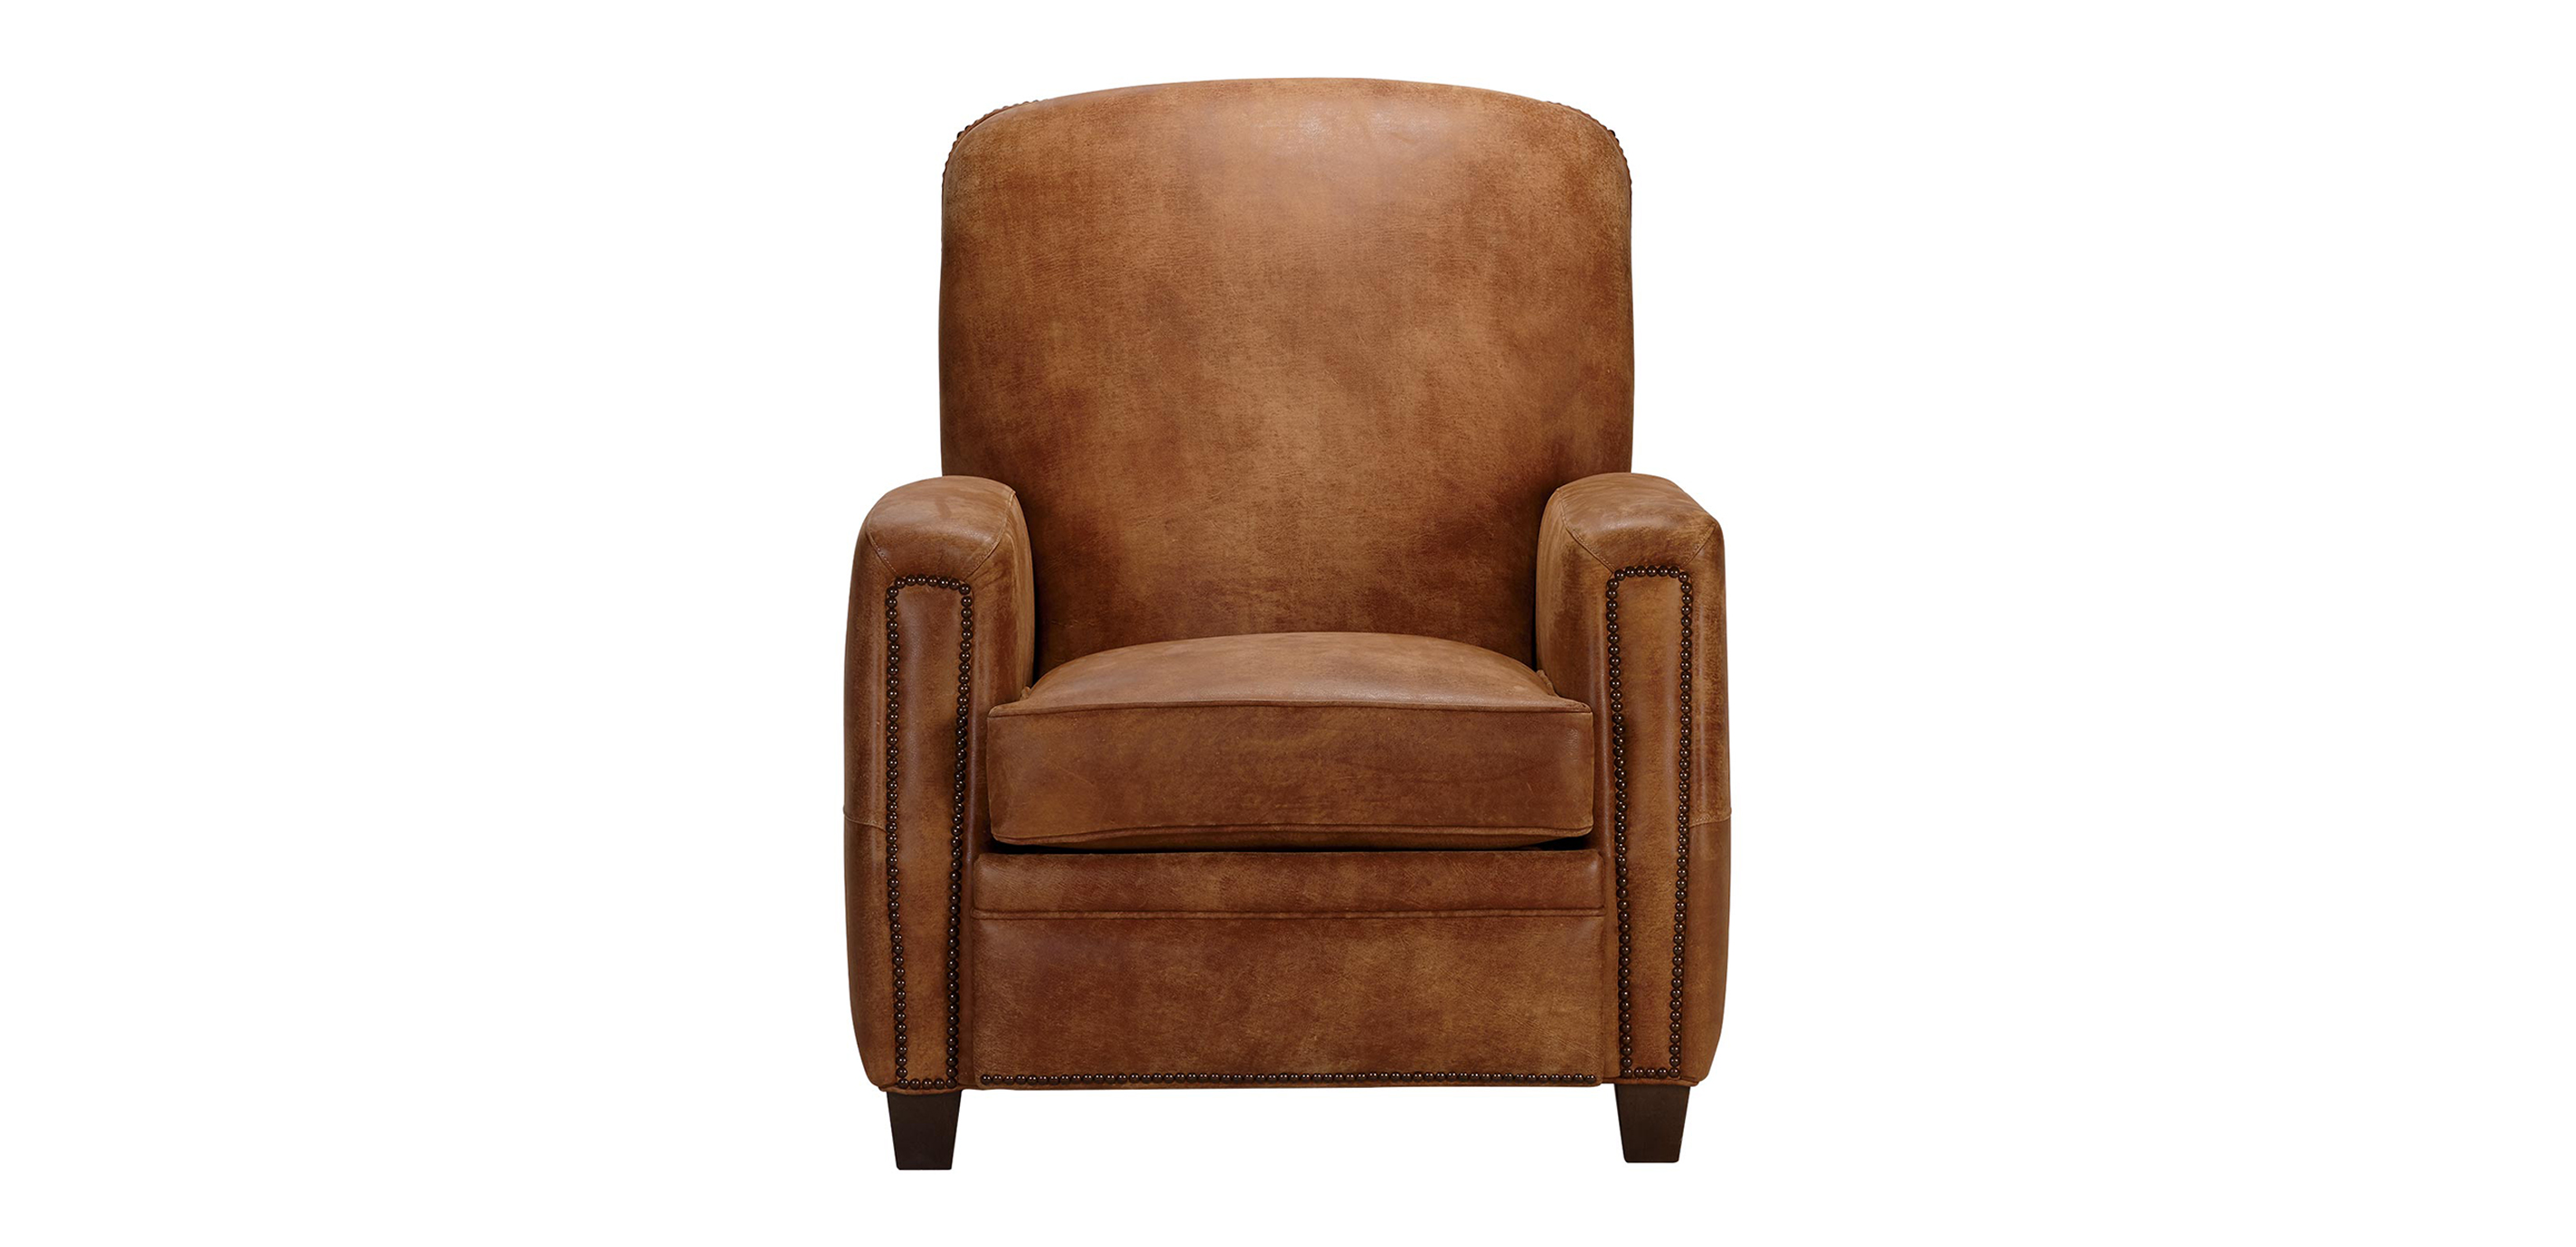 recliner shalimar opulence home leather cocoa cambridge